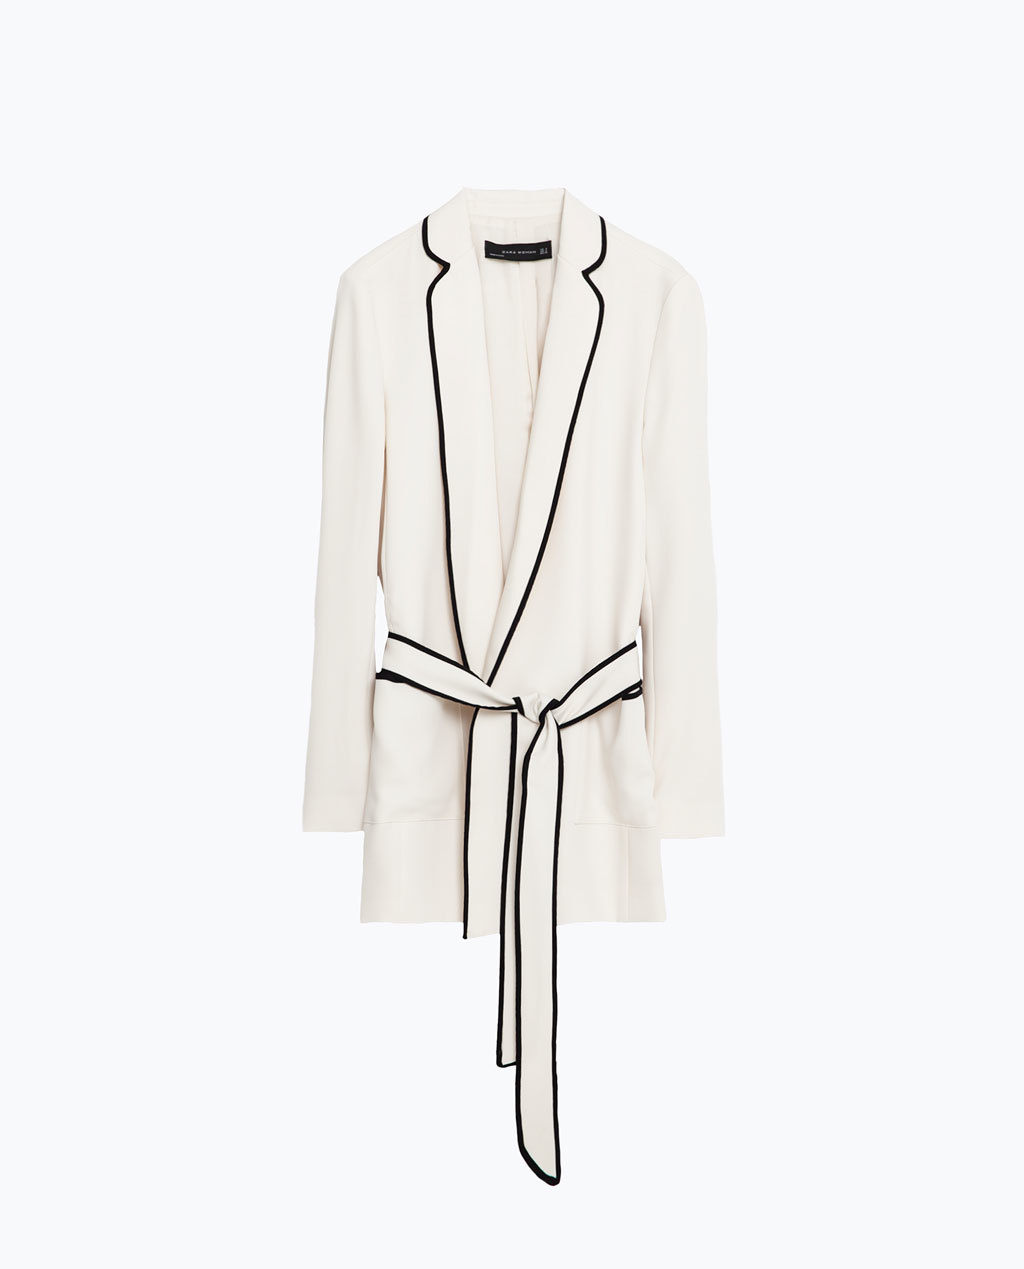 Belted Blazer - style: single breasted blazer; length: below the bottom; collar: standard lapel/rever collar; predominant colour: ivory/cream; secondary colour: black; occasions: casual, creative work; fit: tailored/fitted; fibres: polyester/polyamide - 100%; waist detail: belted waist/tie at waist/drawstring; sleeve length: long sleeve; sleeve style: standard; texture group: crepes; collar break: low/open; pattern type: fabric; pattern size: standard; pattern: colourblock; season: s/s 2016; wardrobe: highlight